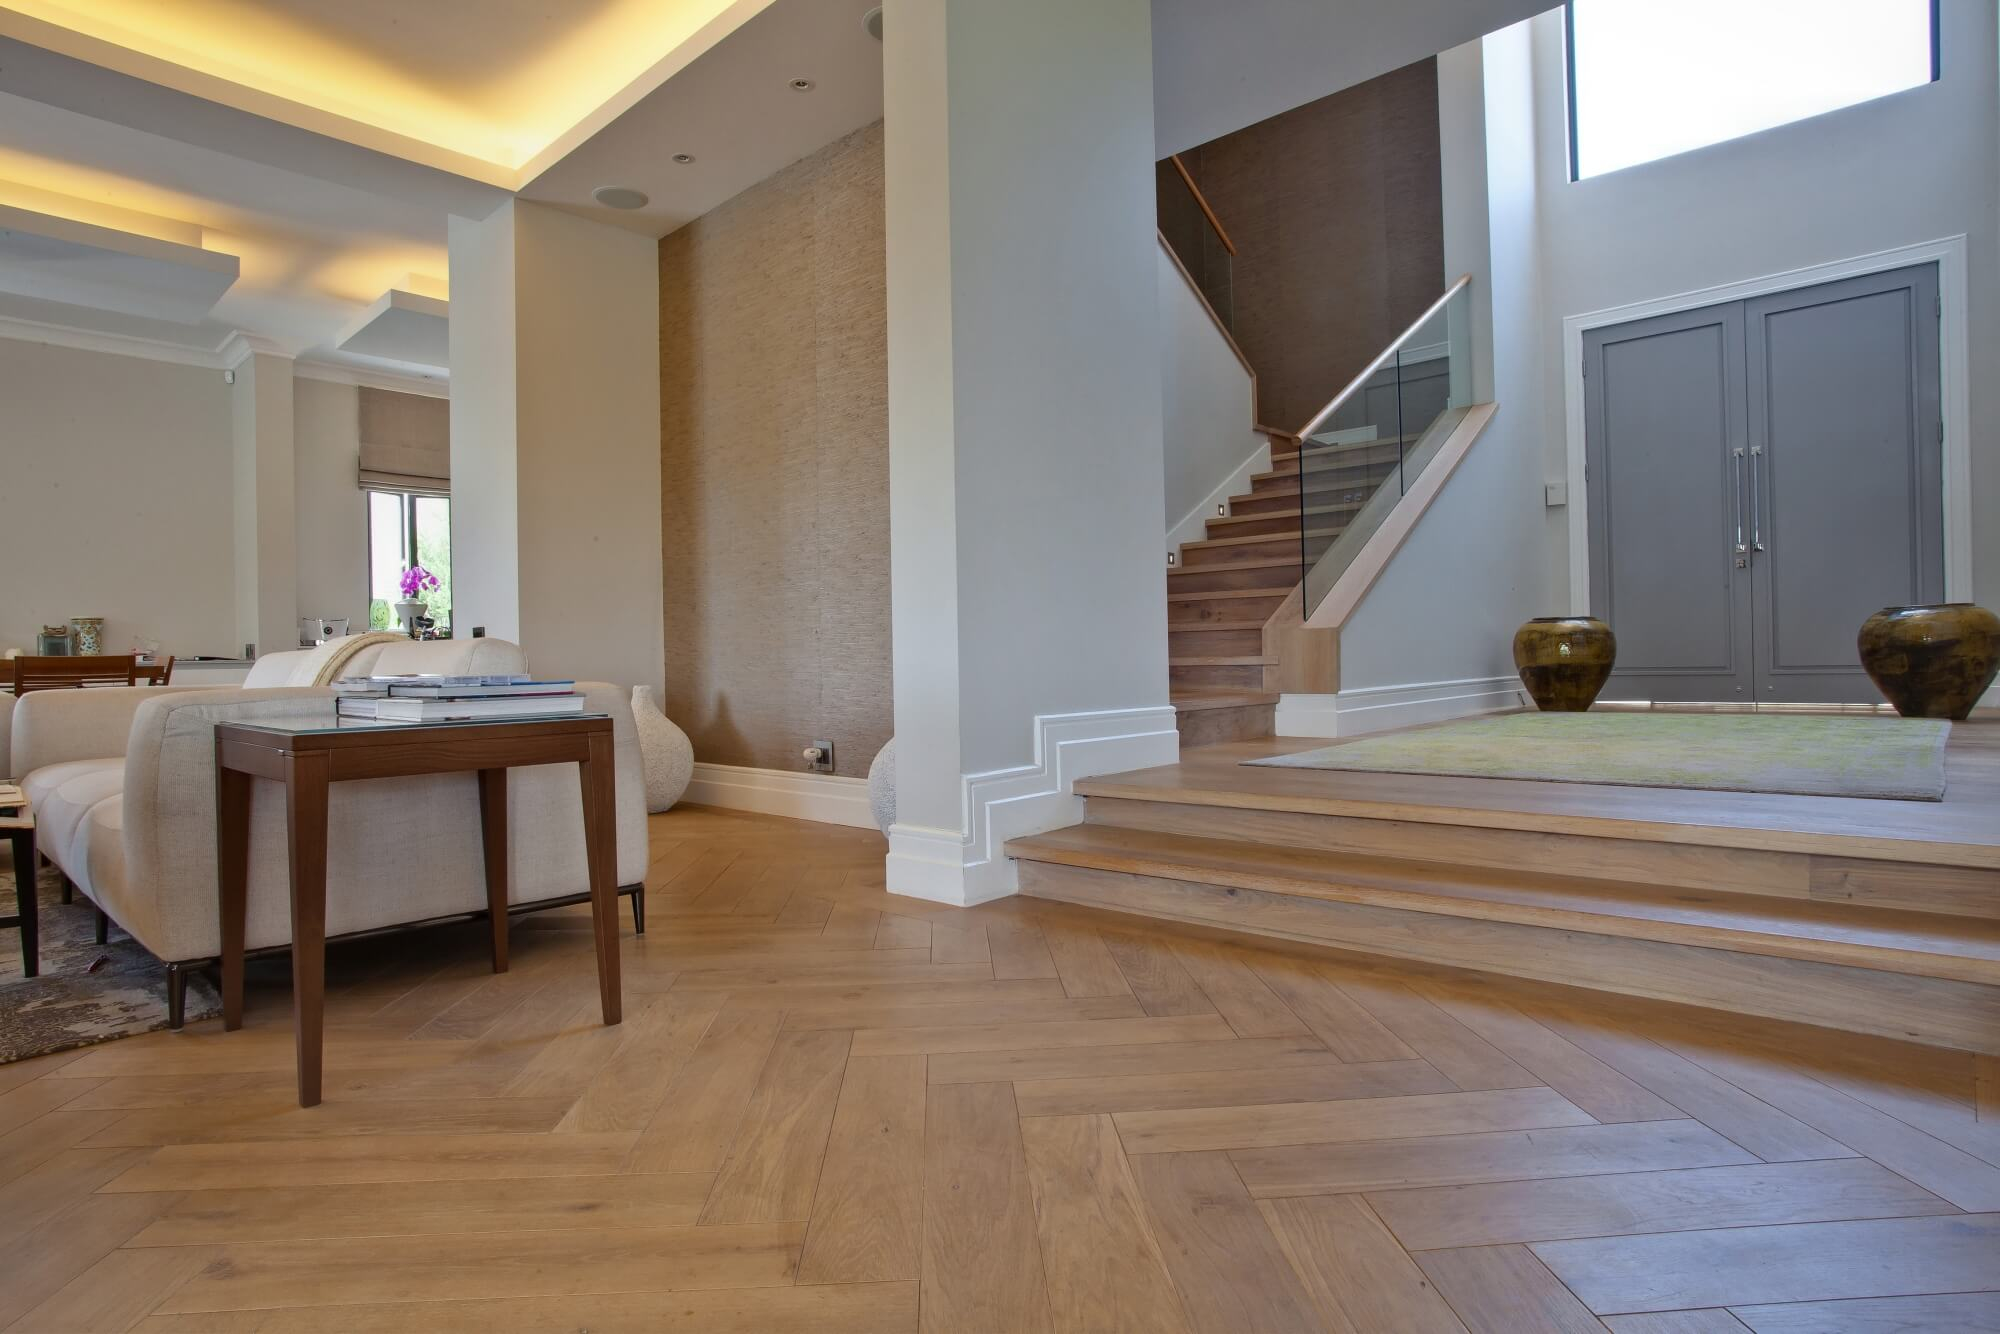 Herringbone oak flooring with a matte wood floor finish on it.